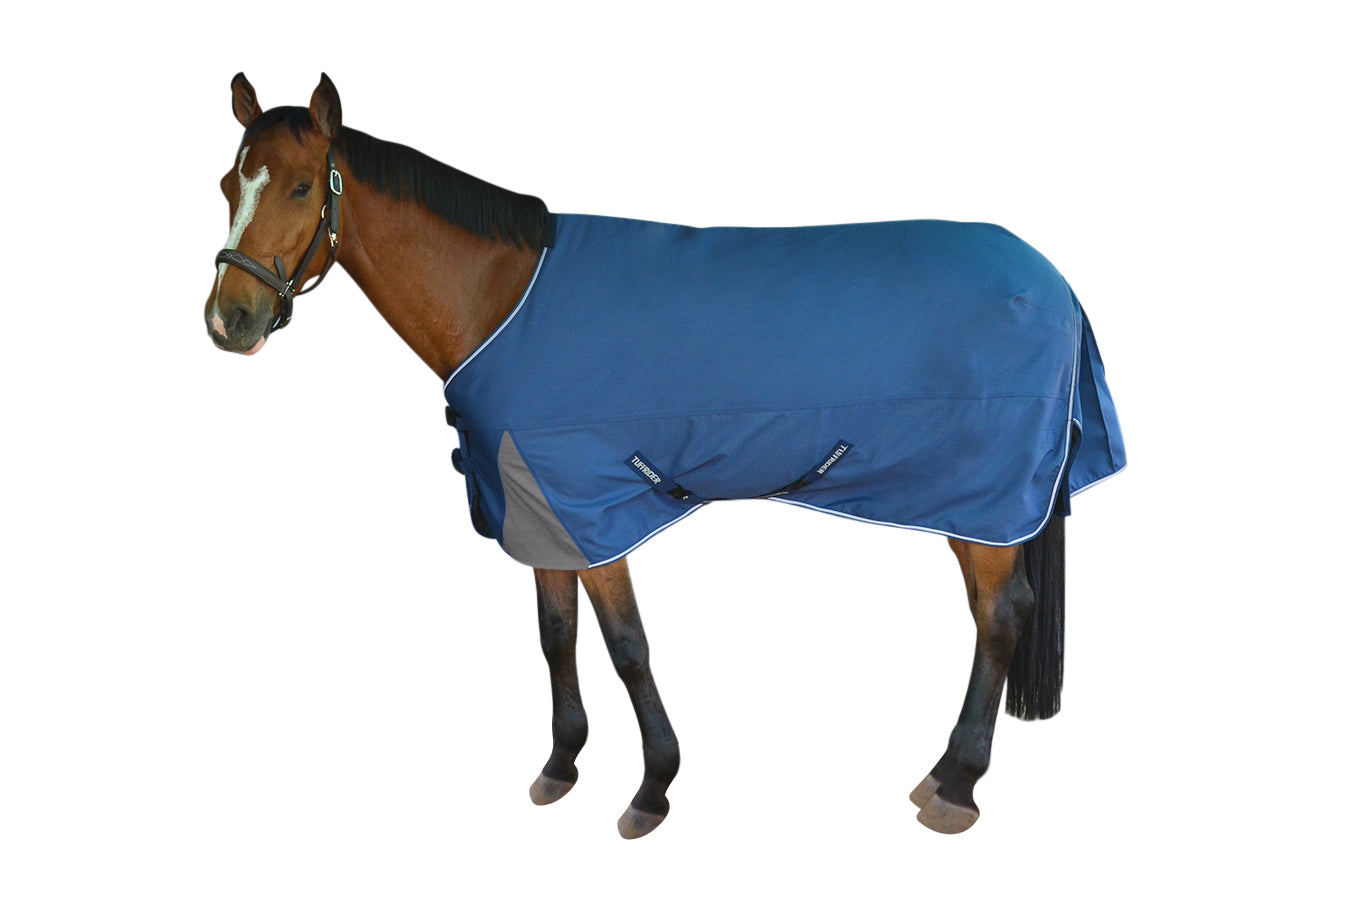 TuffRider Optimum 1680D Triple Weave Turnout Sheet with Standard Neck_1